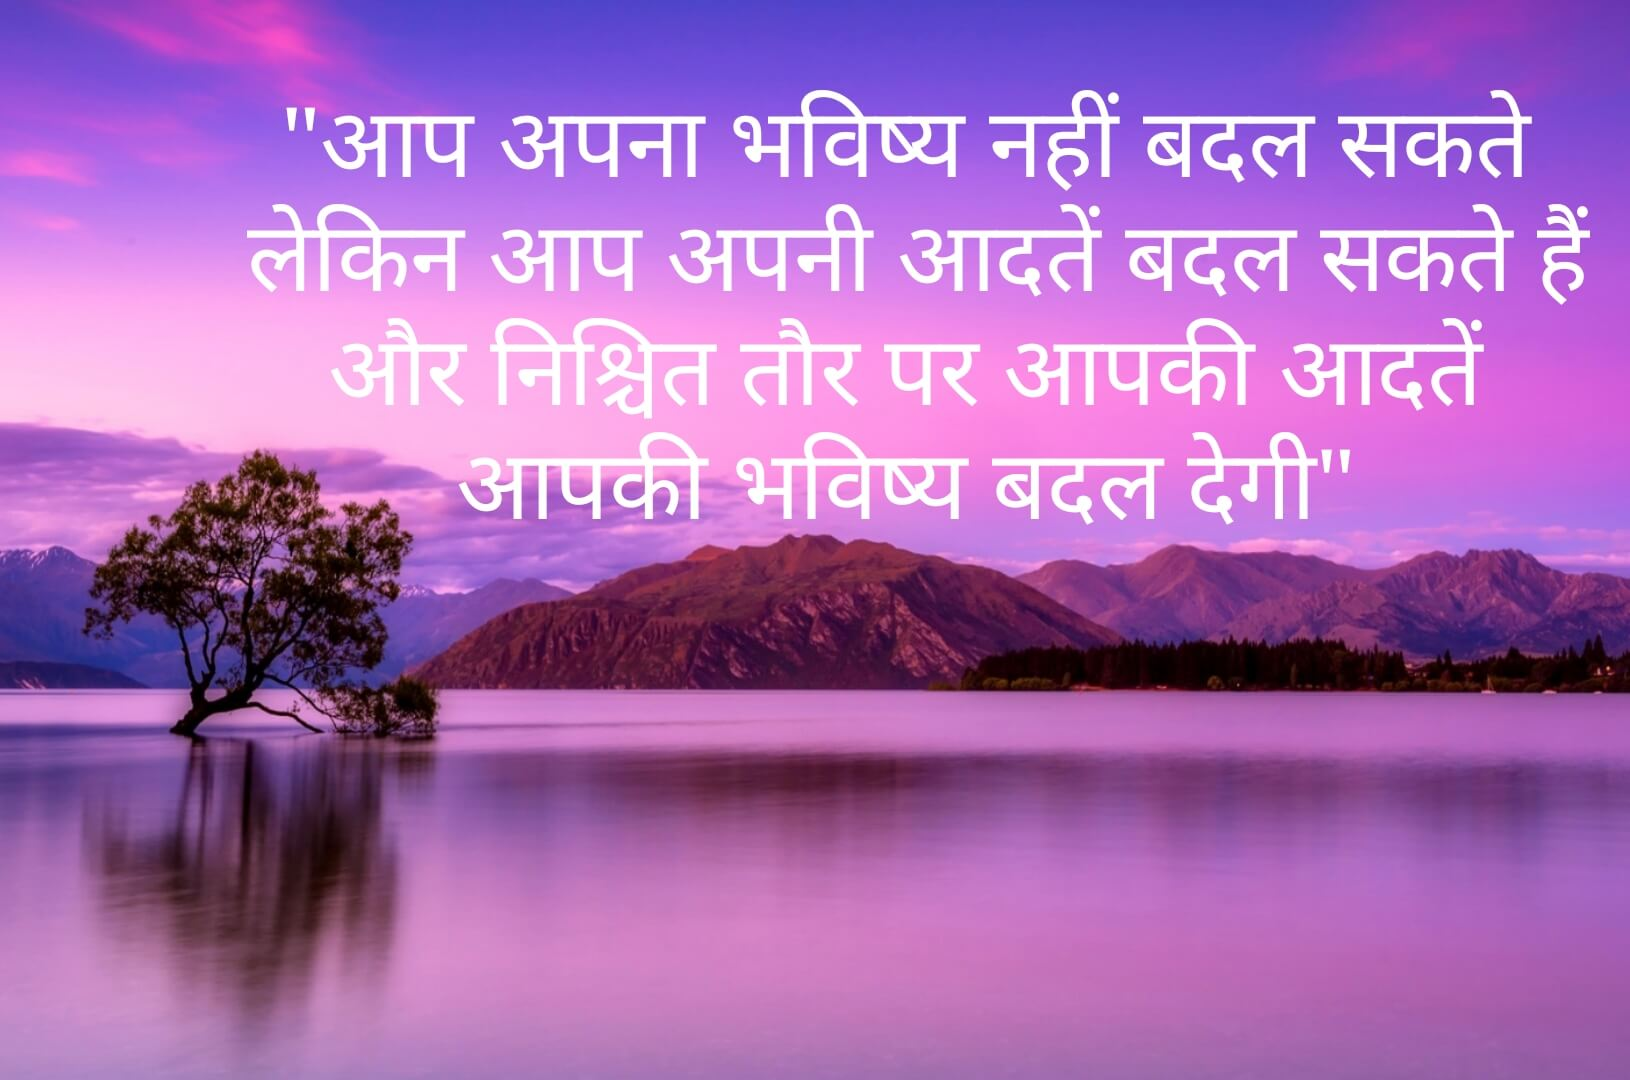 Motivational Shero Shayari in Hindi